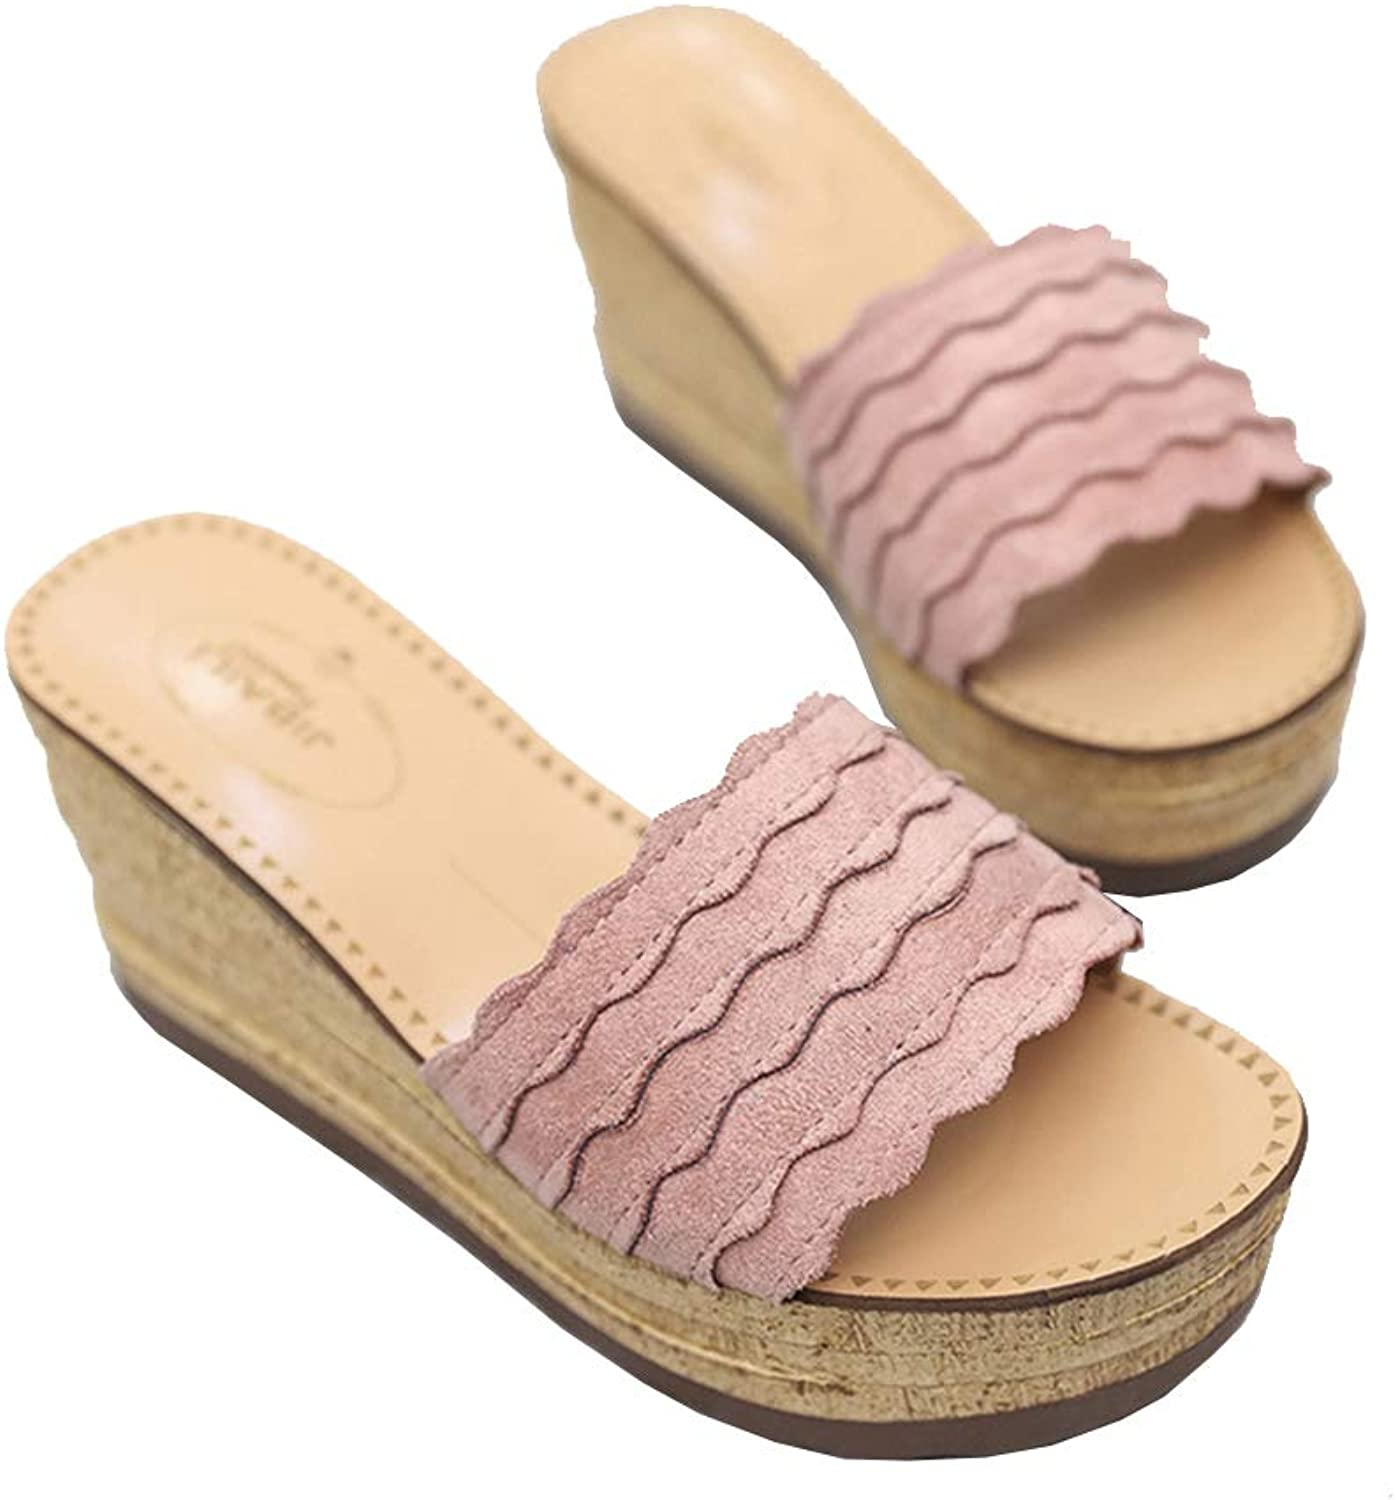 Sandals Women Ladies Summer Thick-Soled Platform Wedge Heels Casual Round Toe Beach Retro Fashion Ankle shoes Slipper